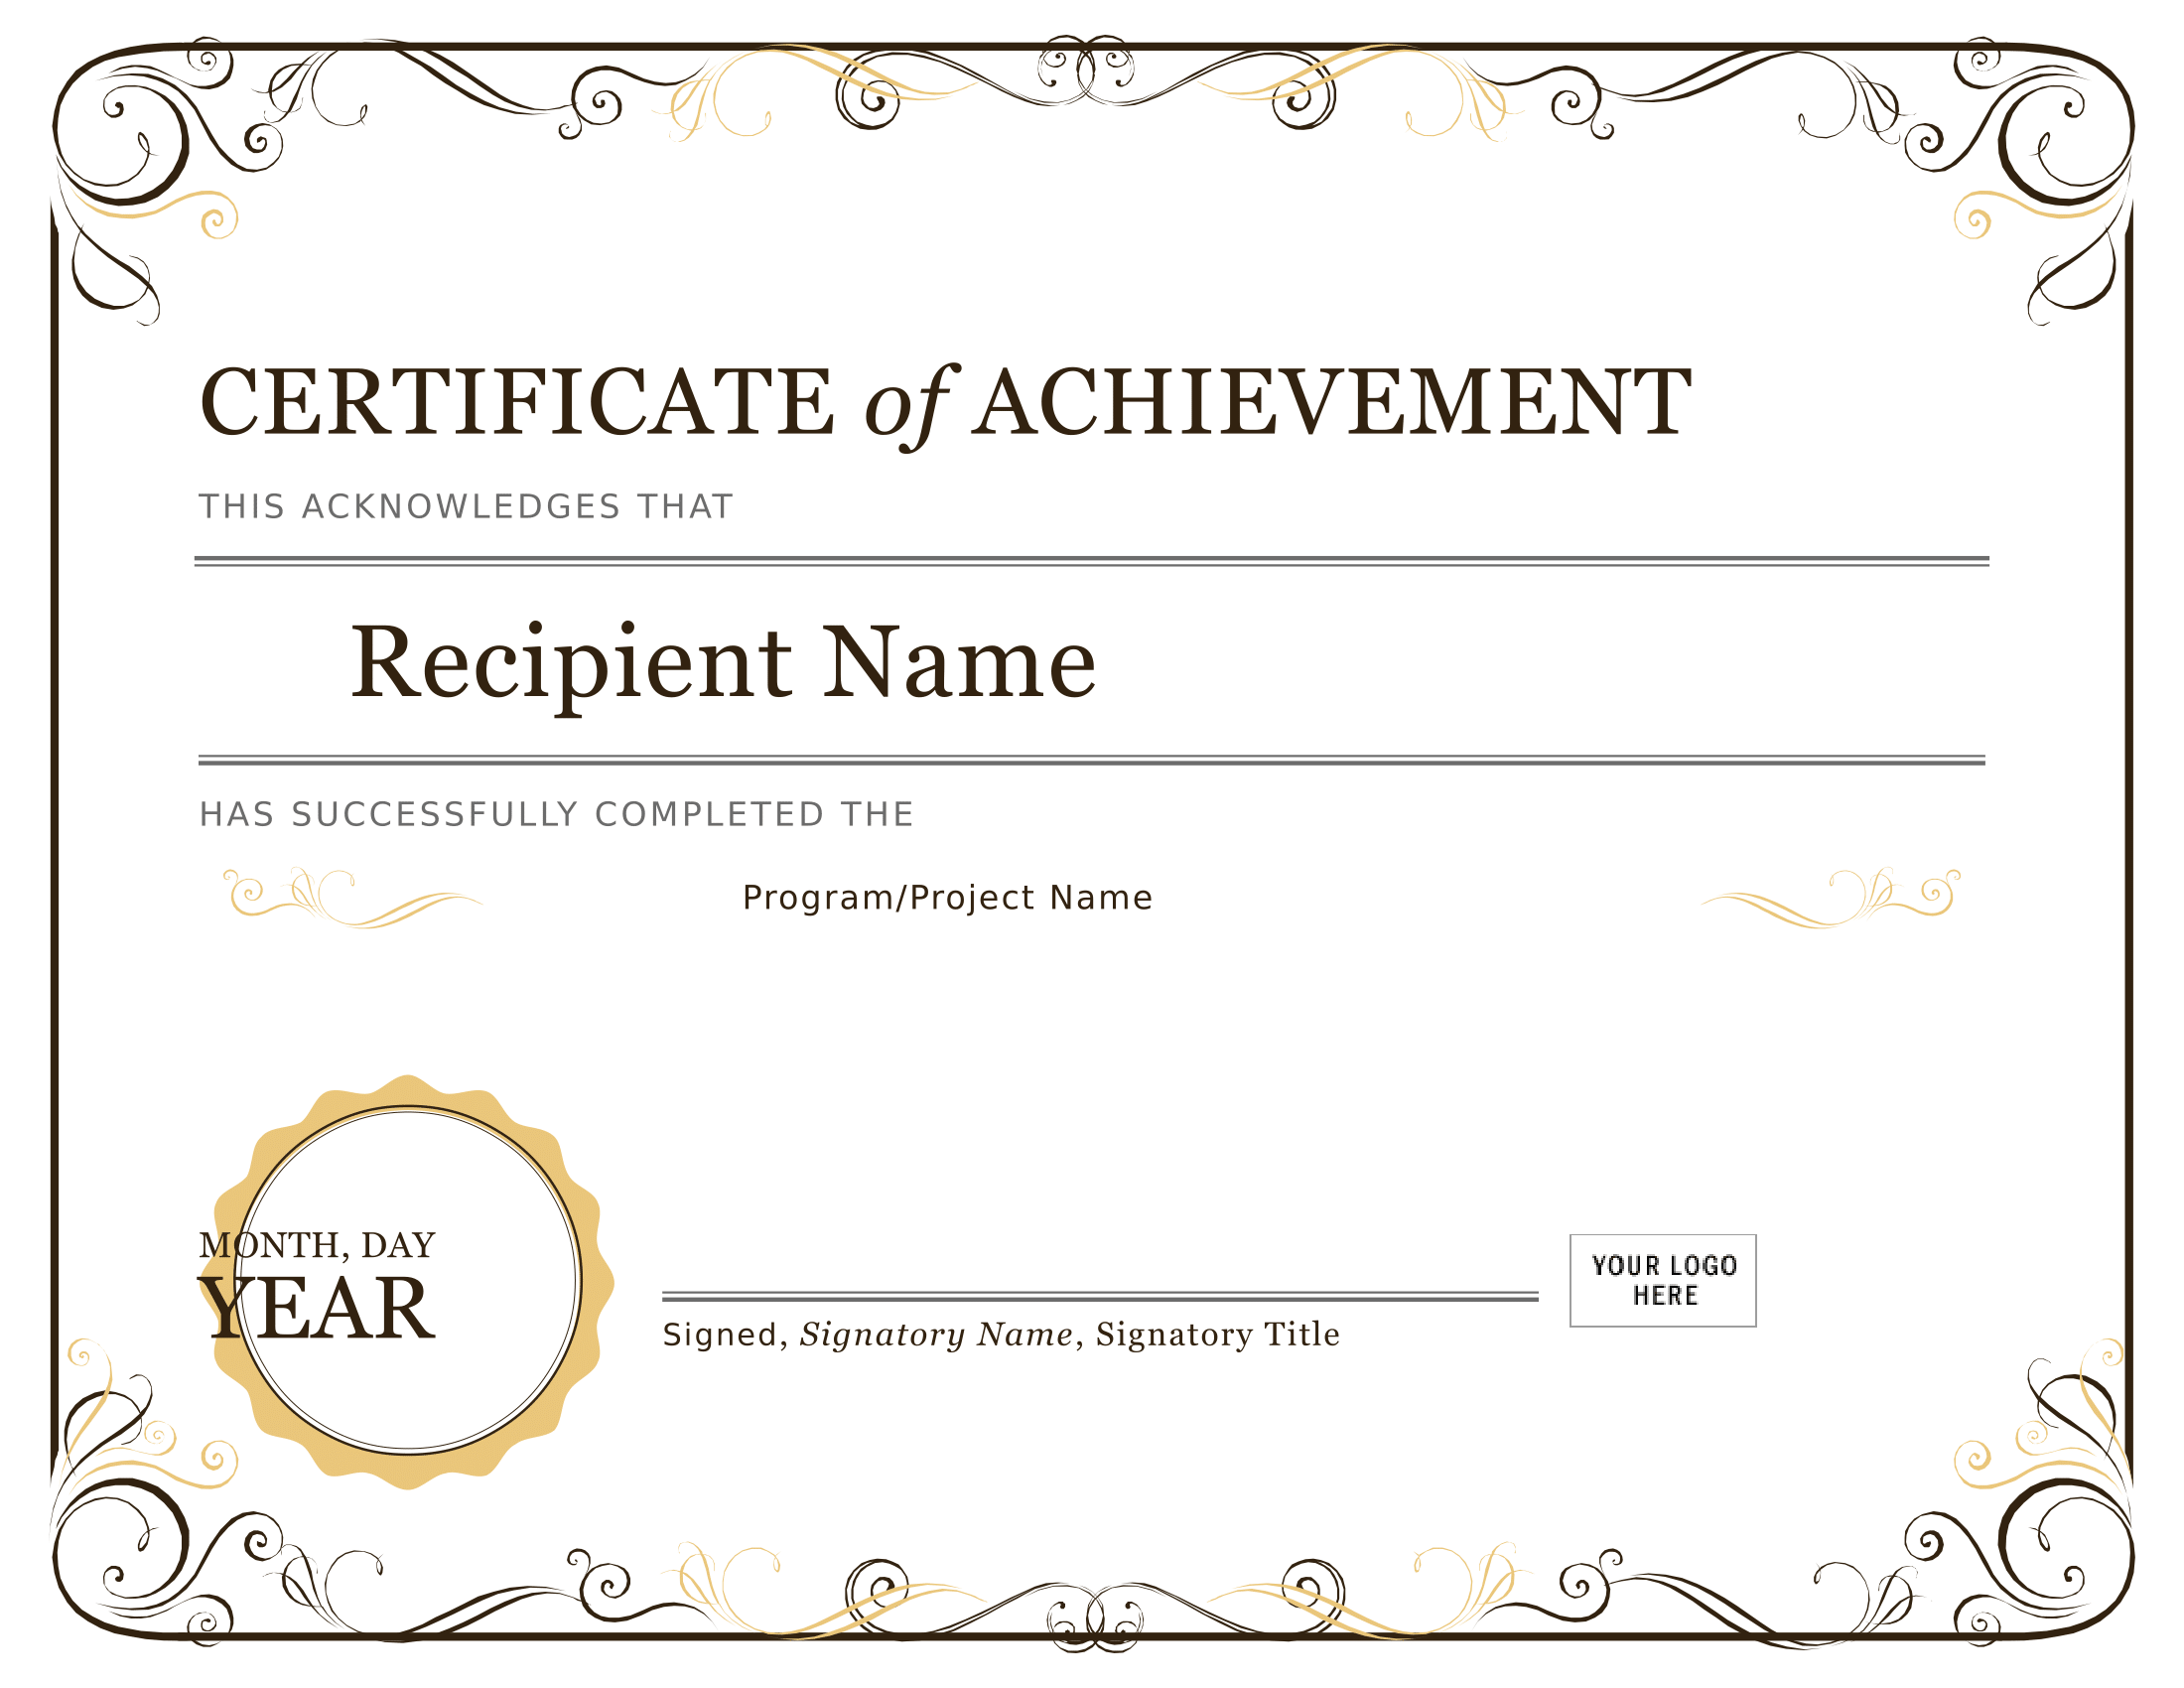 Free Certificate Template Certificates Download FREE Business Letter Templates Forms Menus Certificates And More